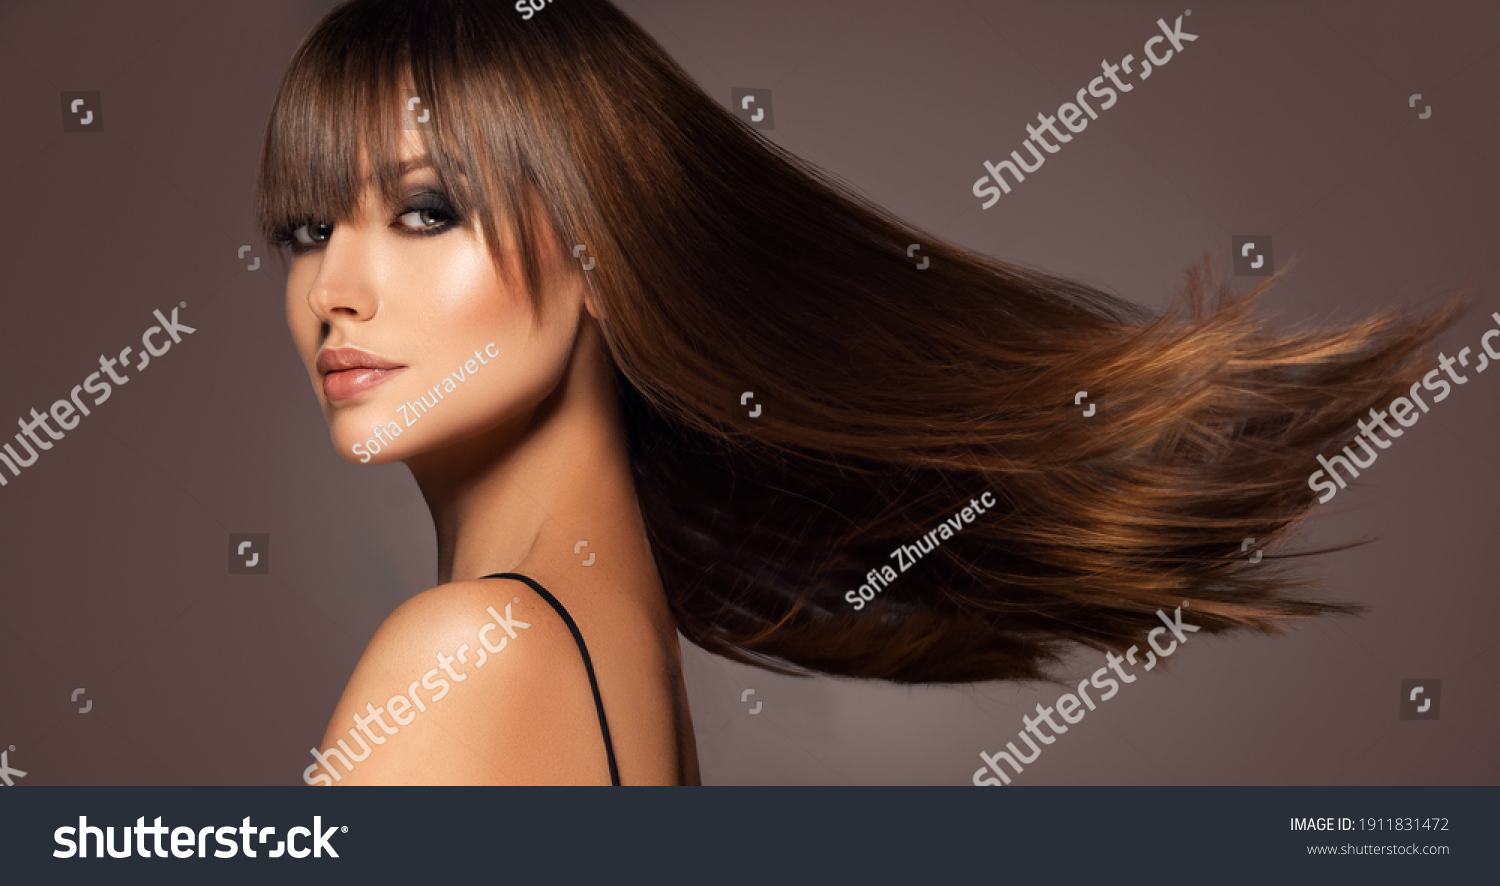 Beautiful model woman with shiny  and straight long hair. Keratin  straightening. Treatment, care and spa procedures. Beauty  girl smooth hairstyle #1911831472